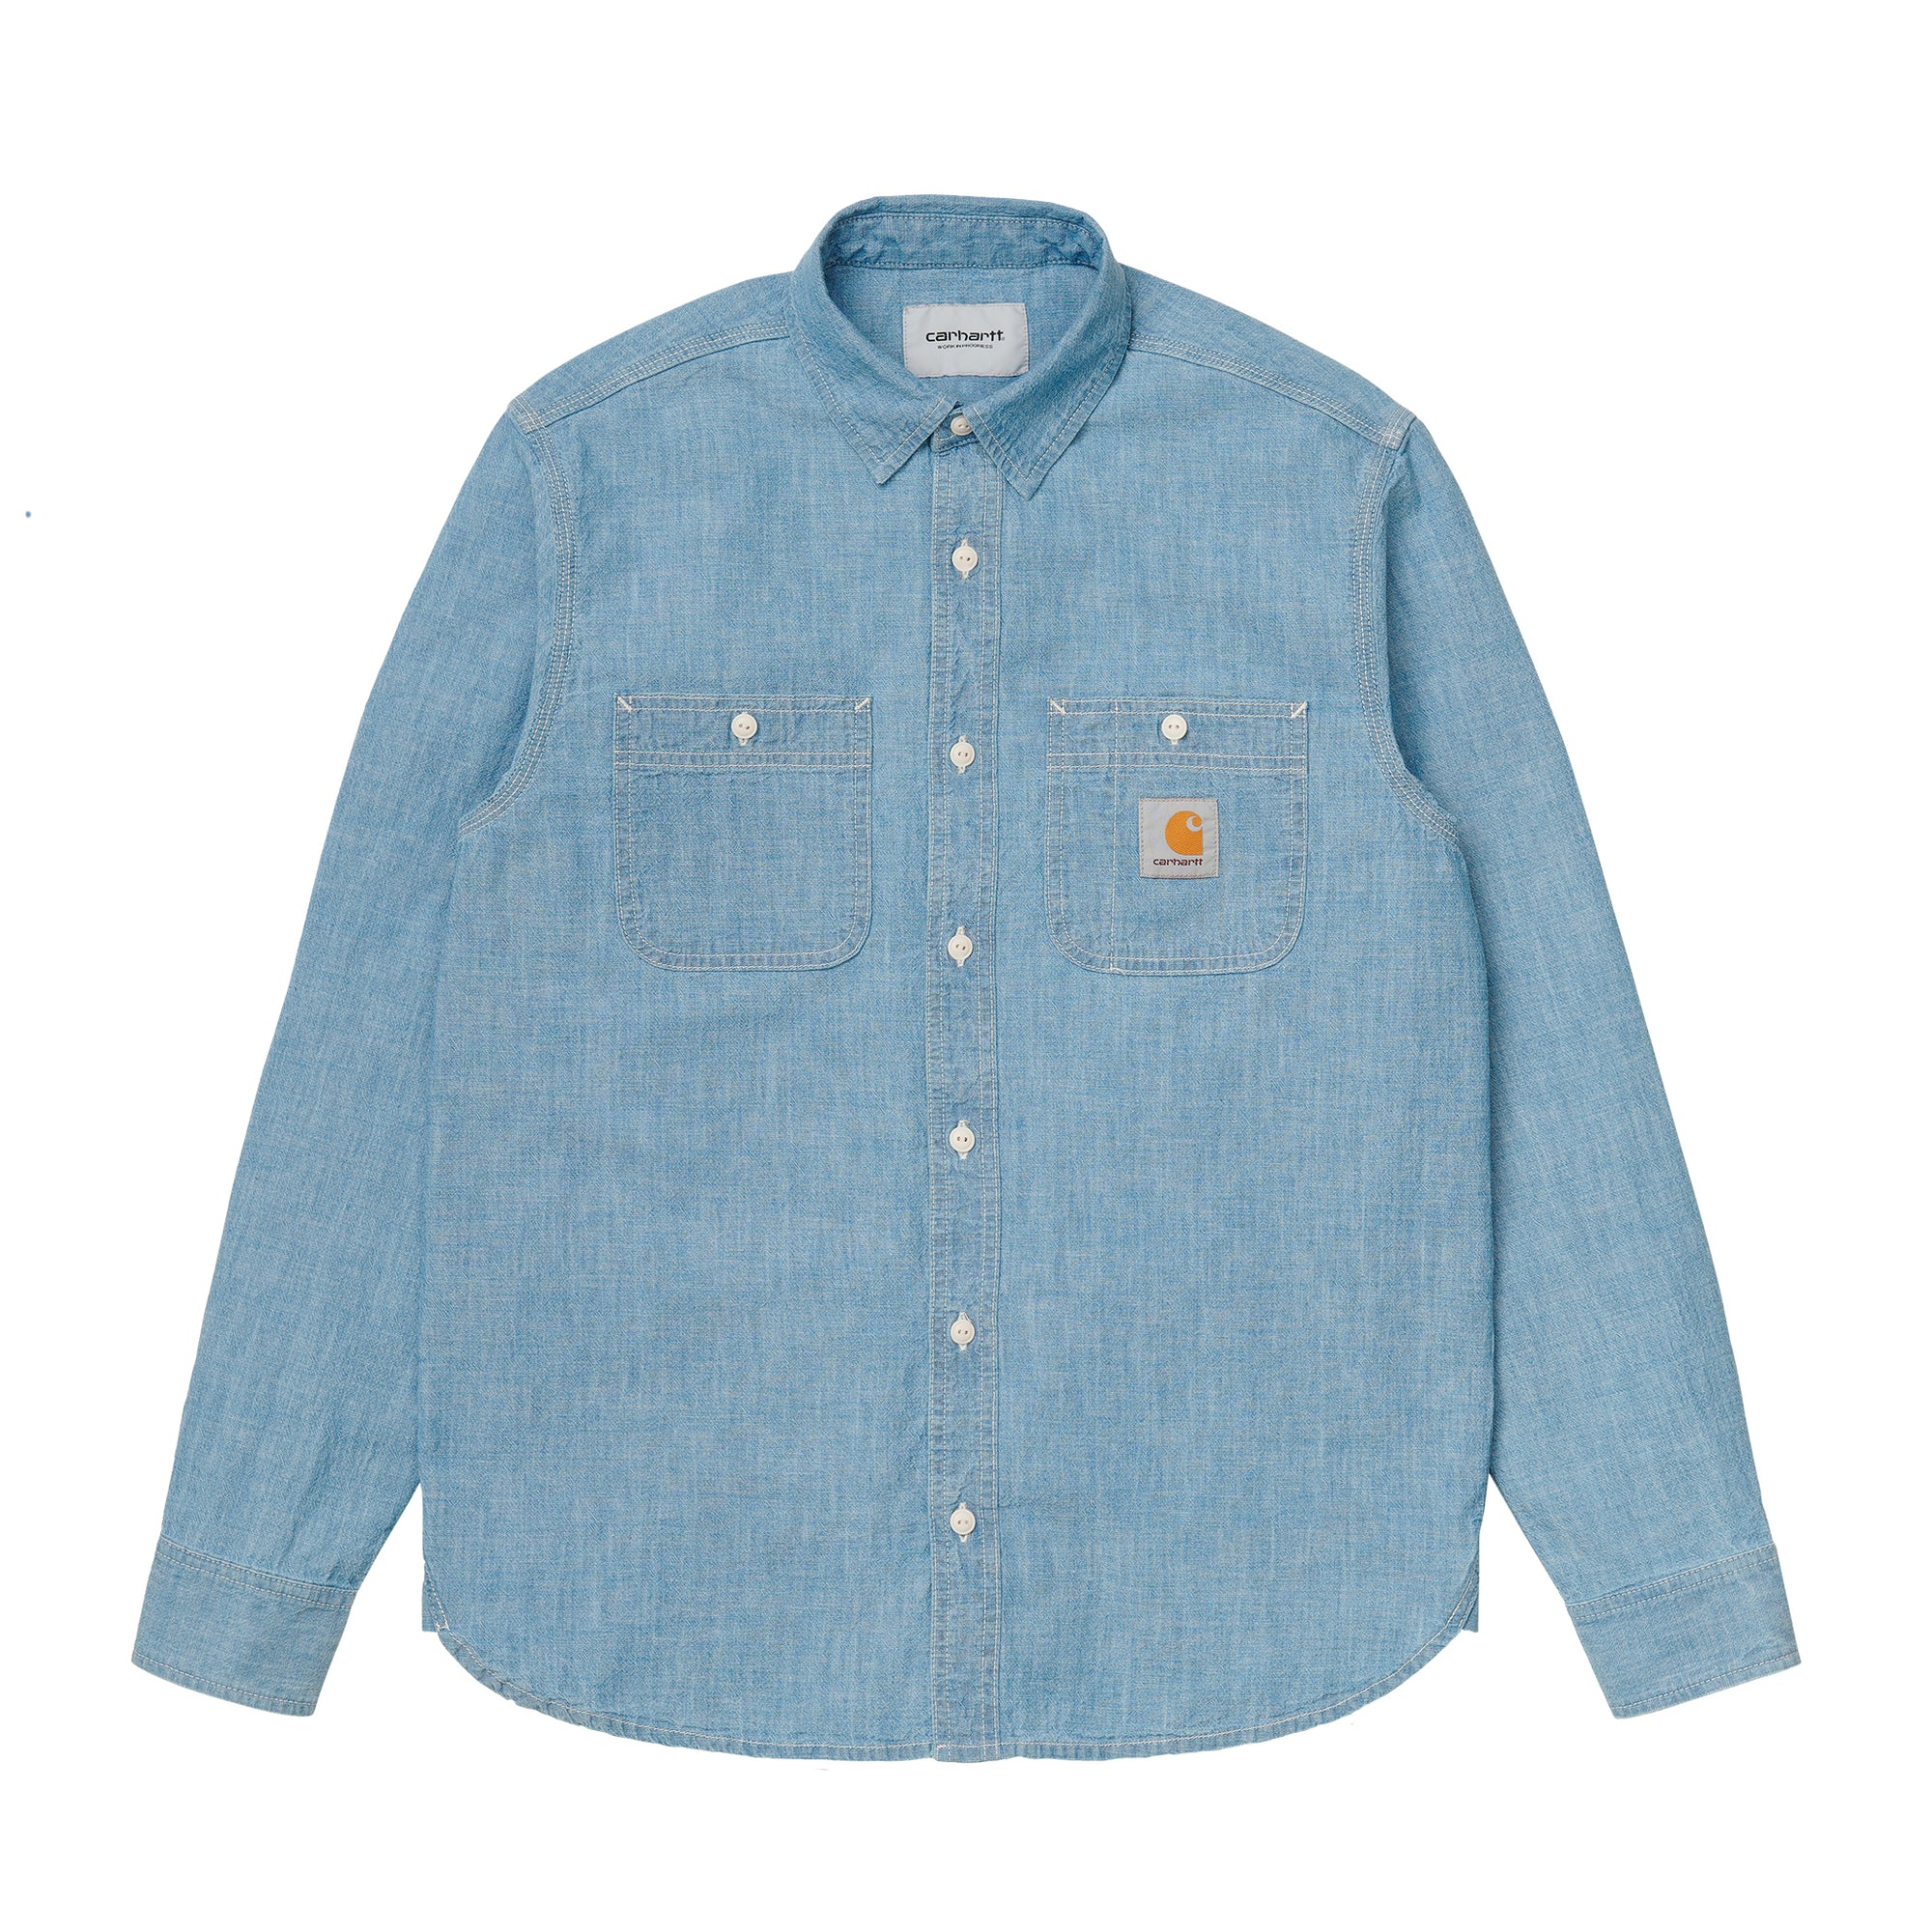 Carhartt WIP Clink Shirt: Blue Bleached - The Union Project